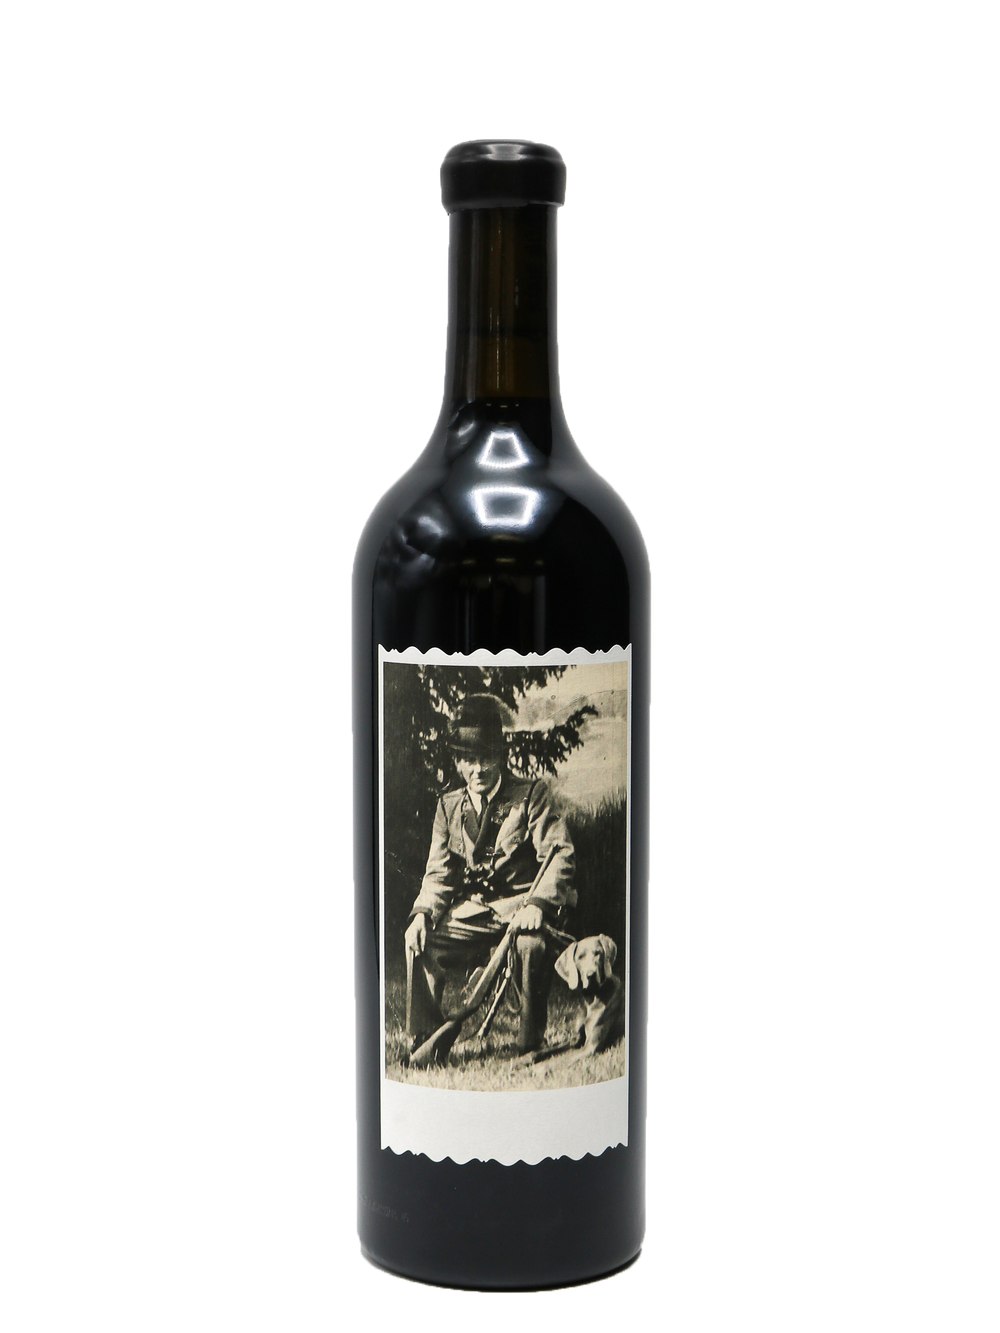 2017 Sine Qua Non The Hated Hunter Syrah Wine